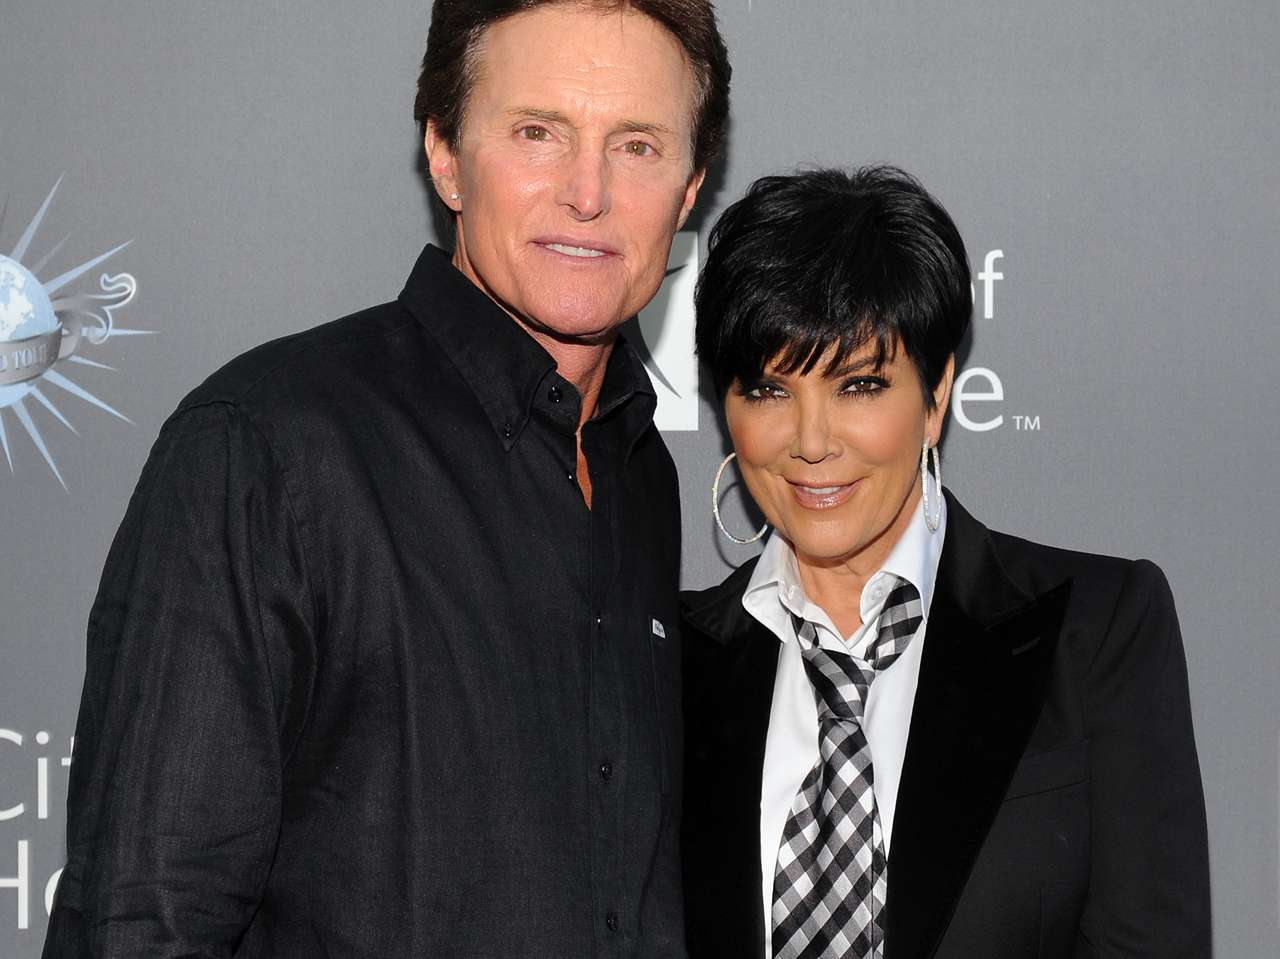 Kris y Bruce Jenner. Foto: Getty Images